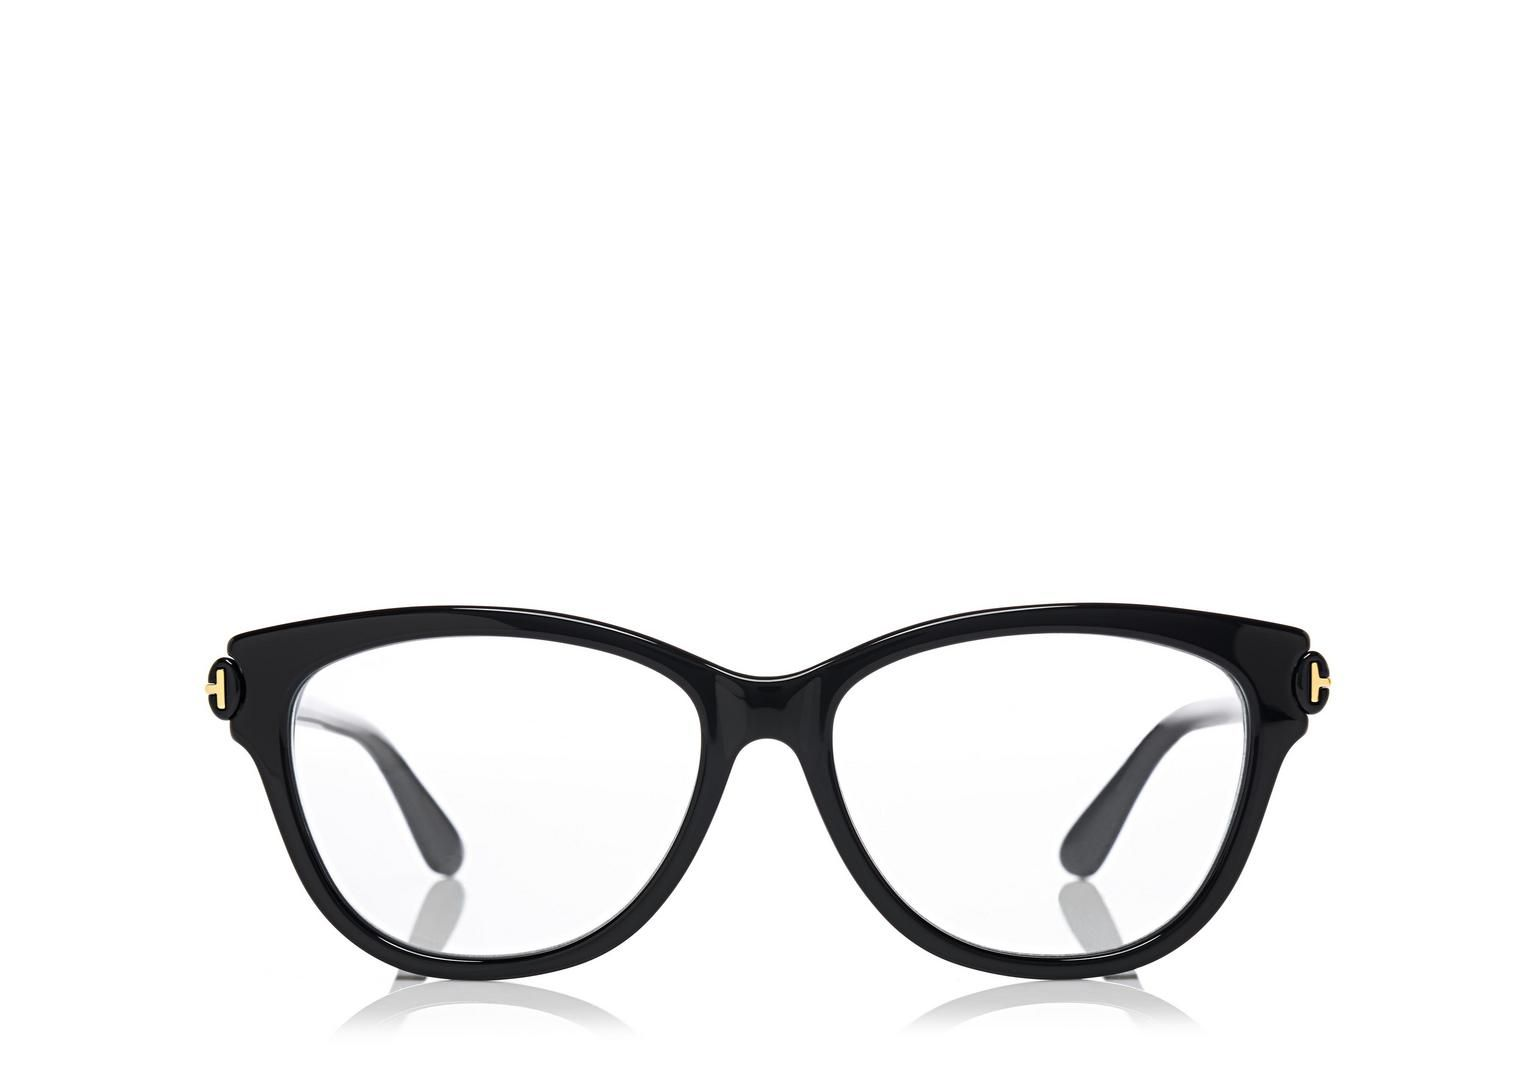 3ab95a34695 My first pair of eye glasses...might as well enjoy the perks of stylish  readers! Soft Square Optical Frame